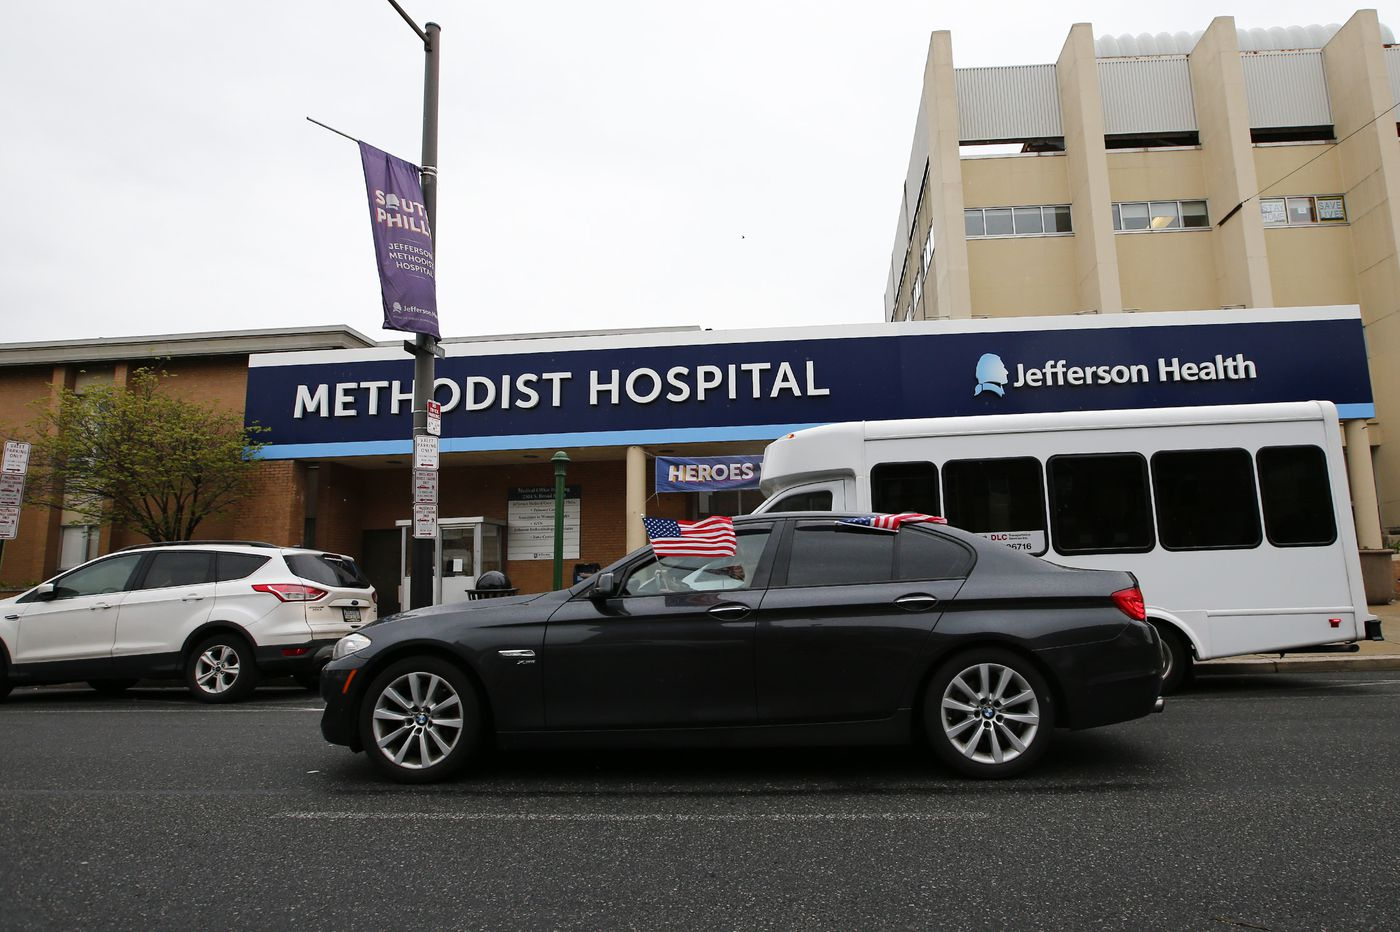 Jefferson Health's expansion hits a deep pothole with large COVID-19 loss